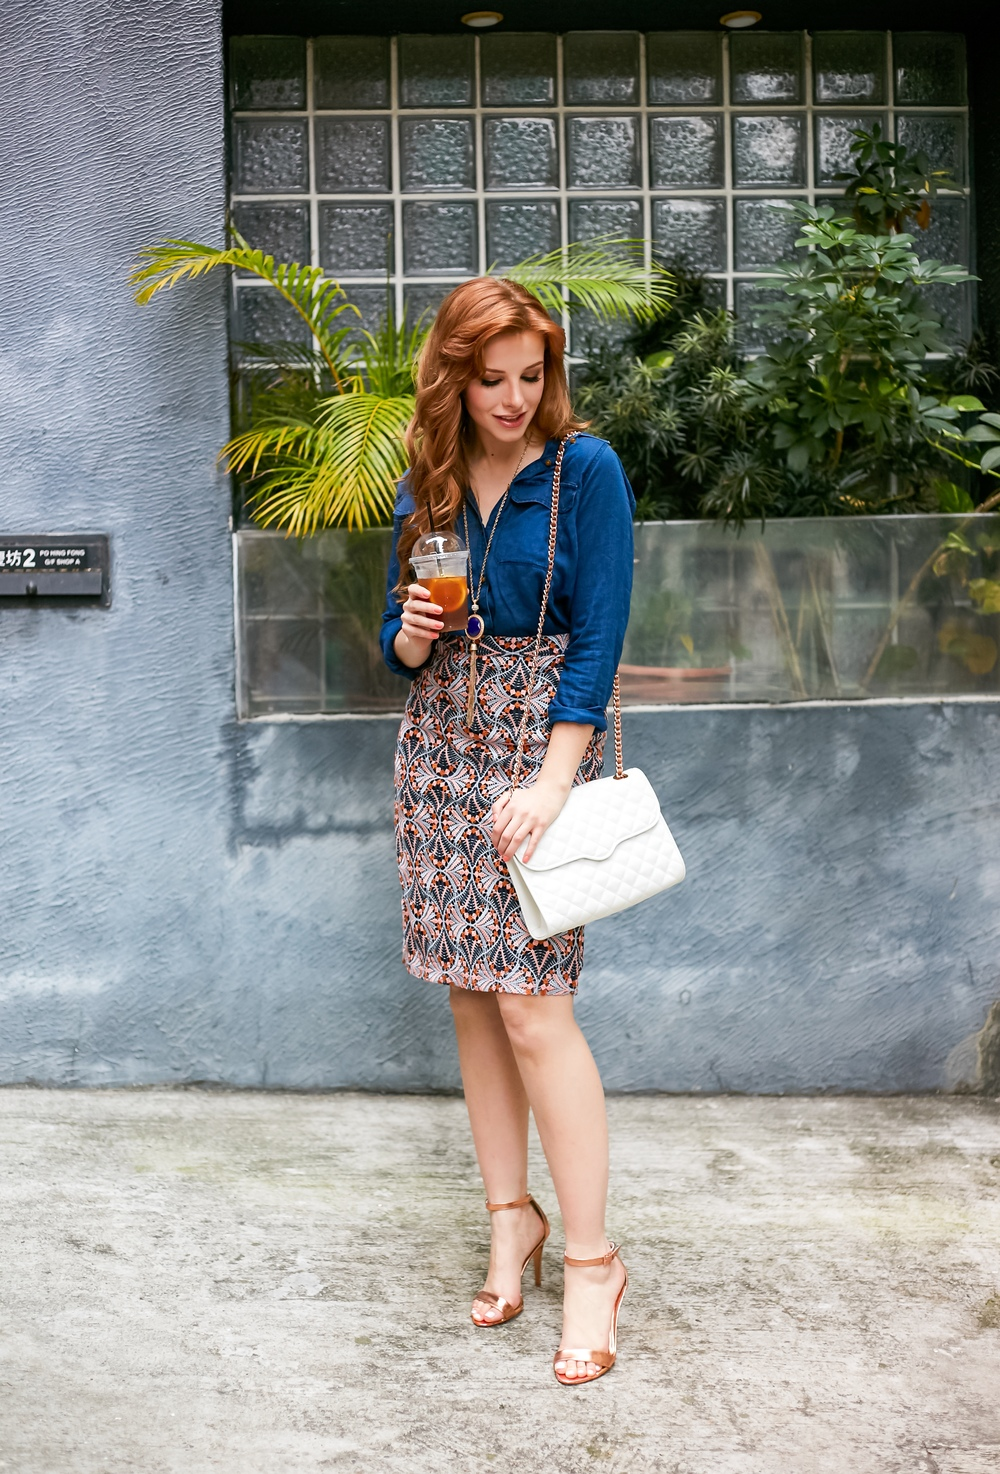 redhead fashion wearing rose gold and denim